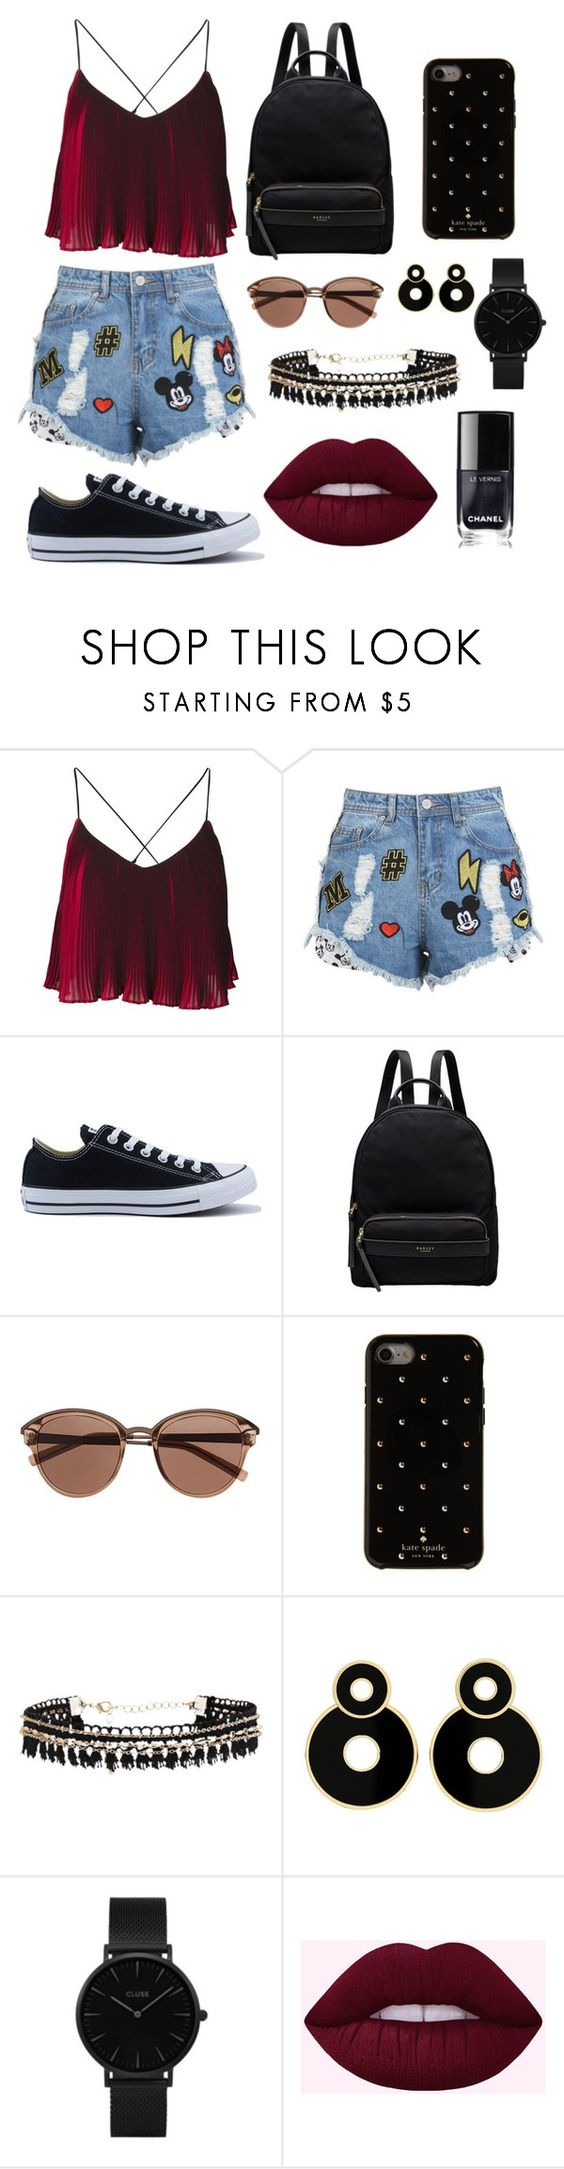 """Untitled #2"" by soninha97 on Polyvore featuring Disney Stars Studios, Converse, Radley, Witchery, Kate Spade, CLUSE and Chanel"